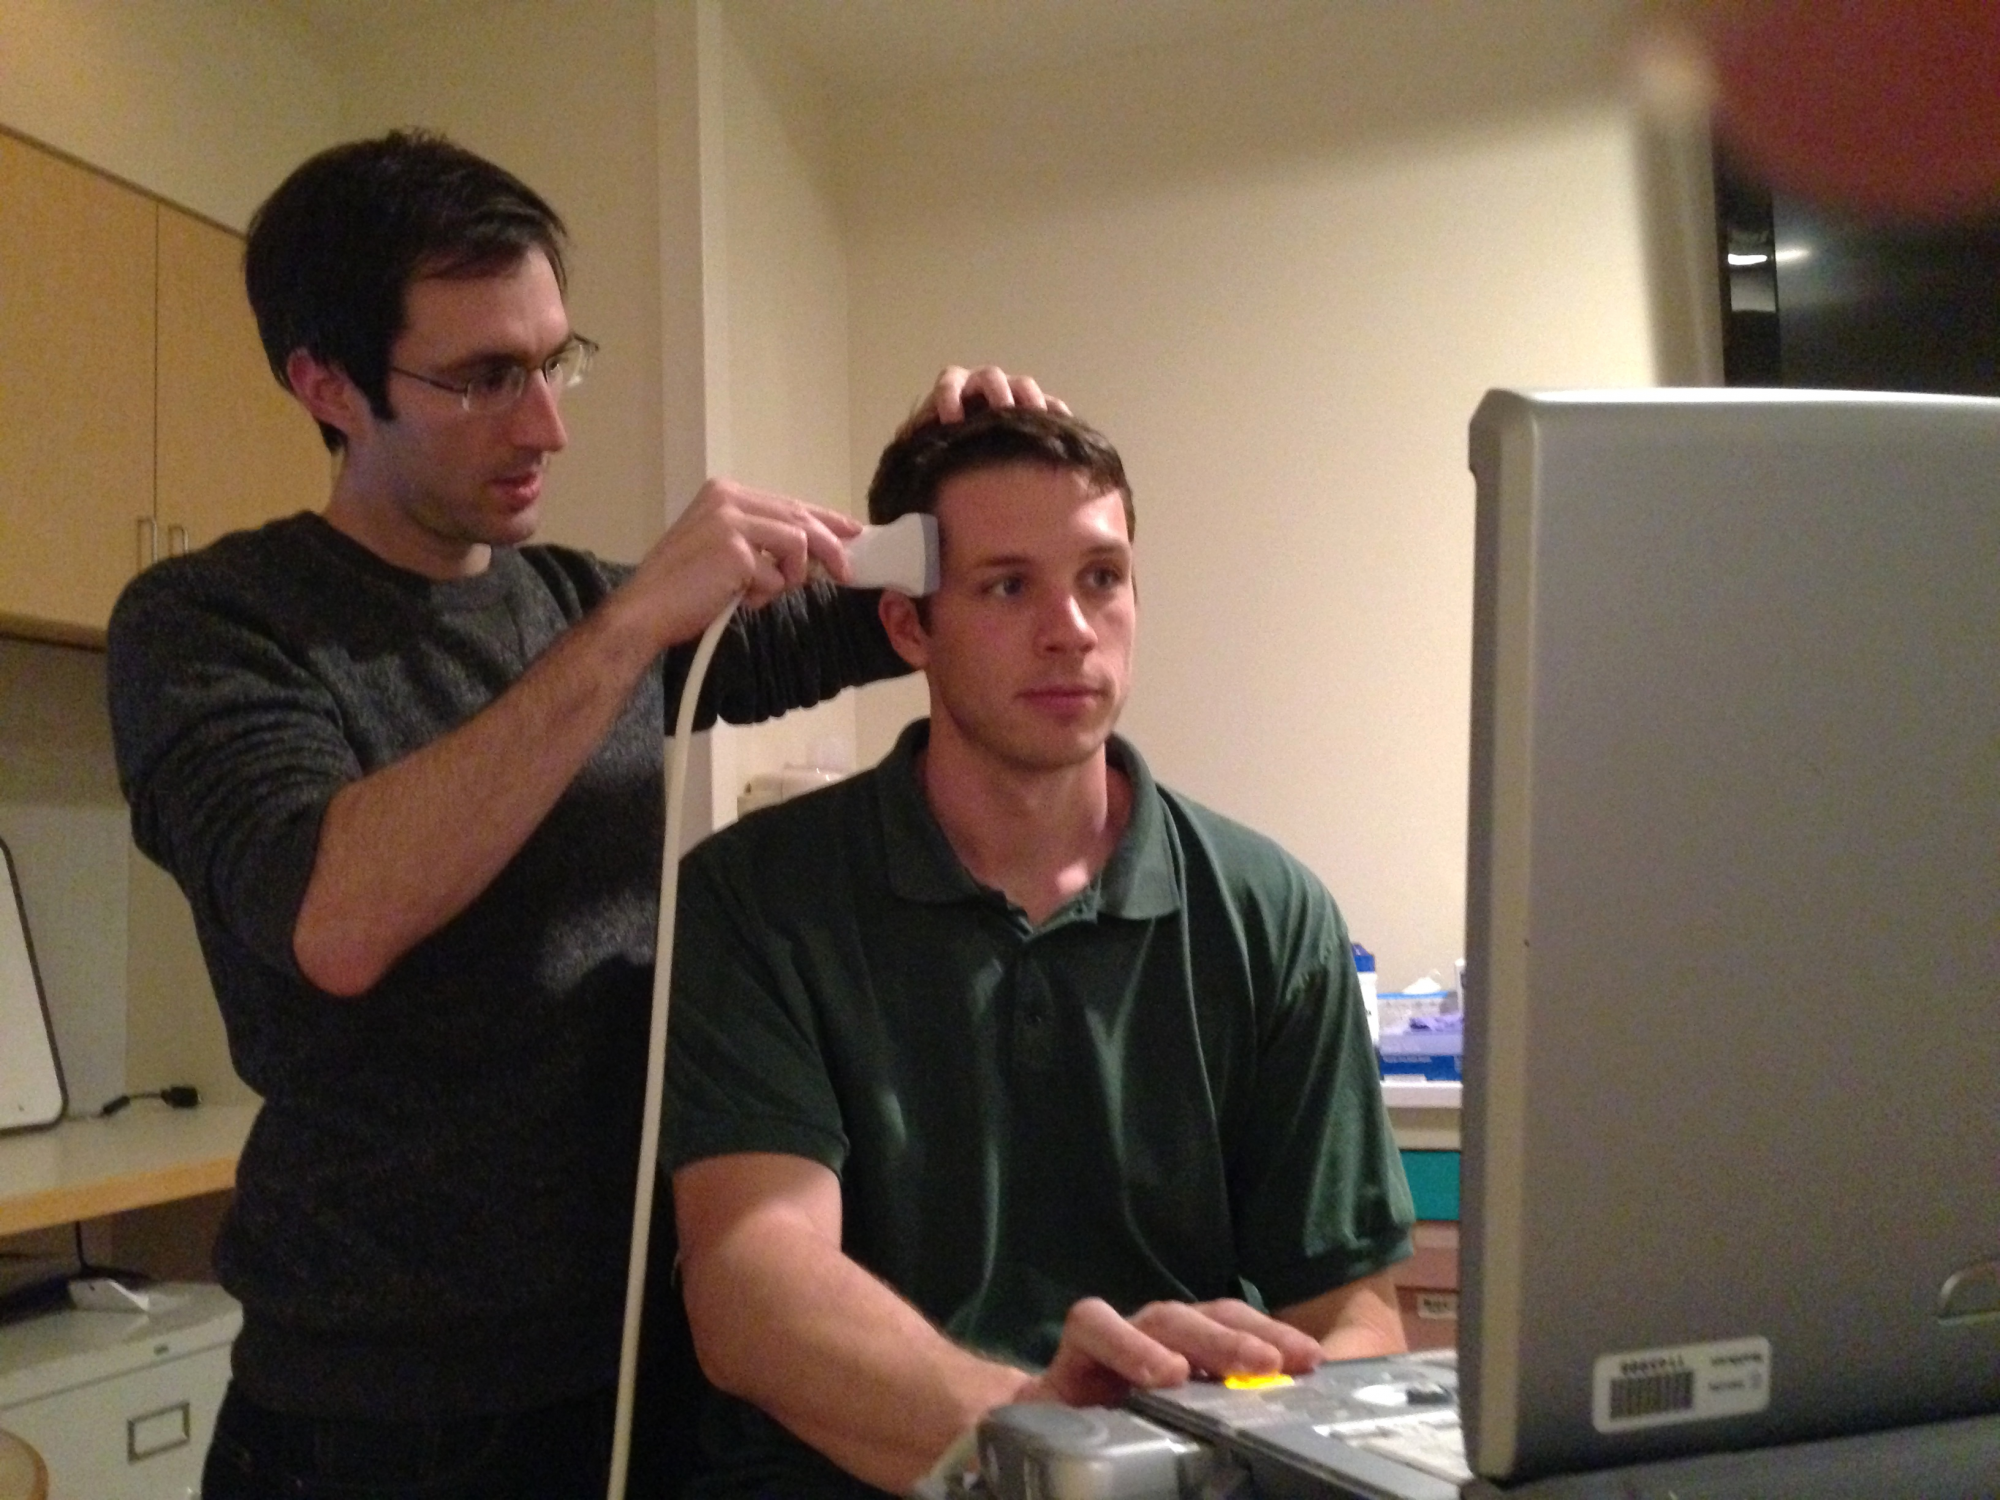 Jay Sanguinetti, a doctoral candidate the UA's department of psychology, administers brain ultrasound during a clinical trial.